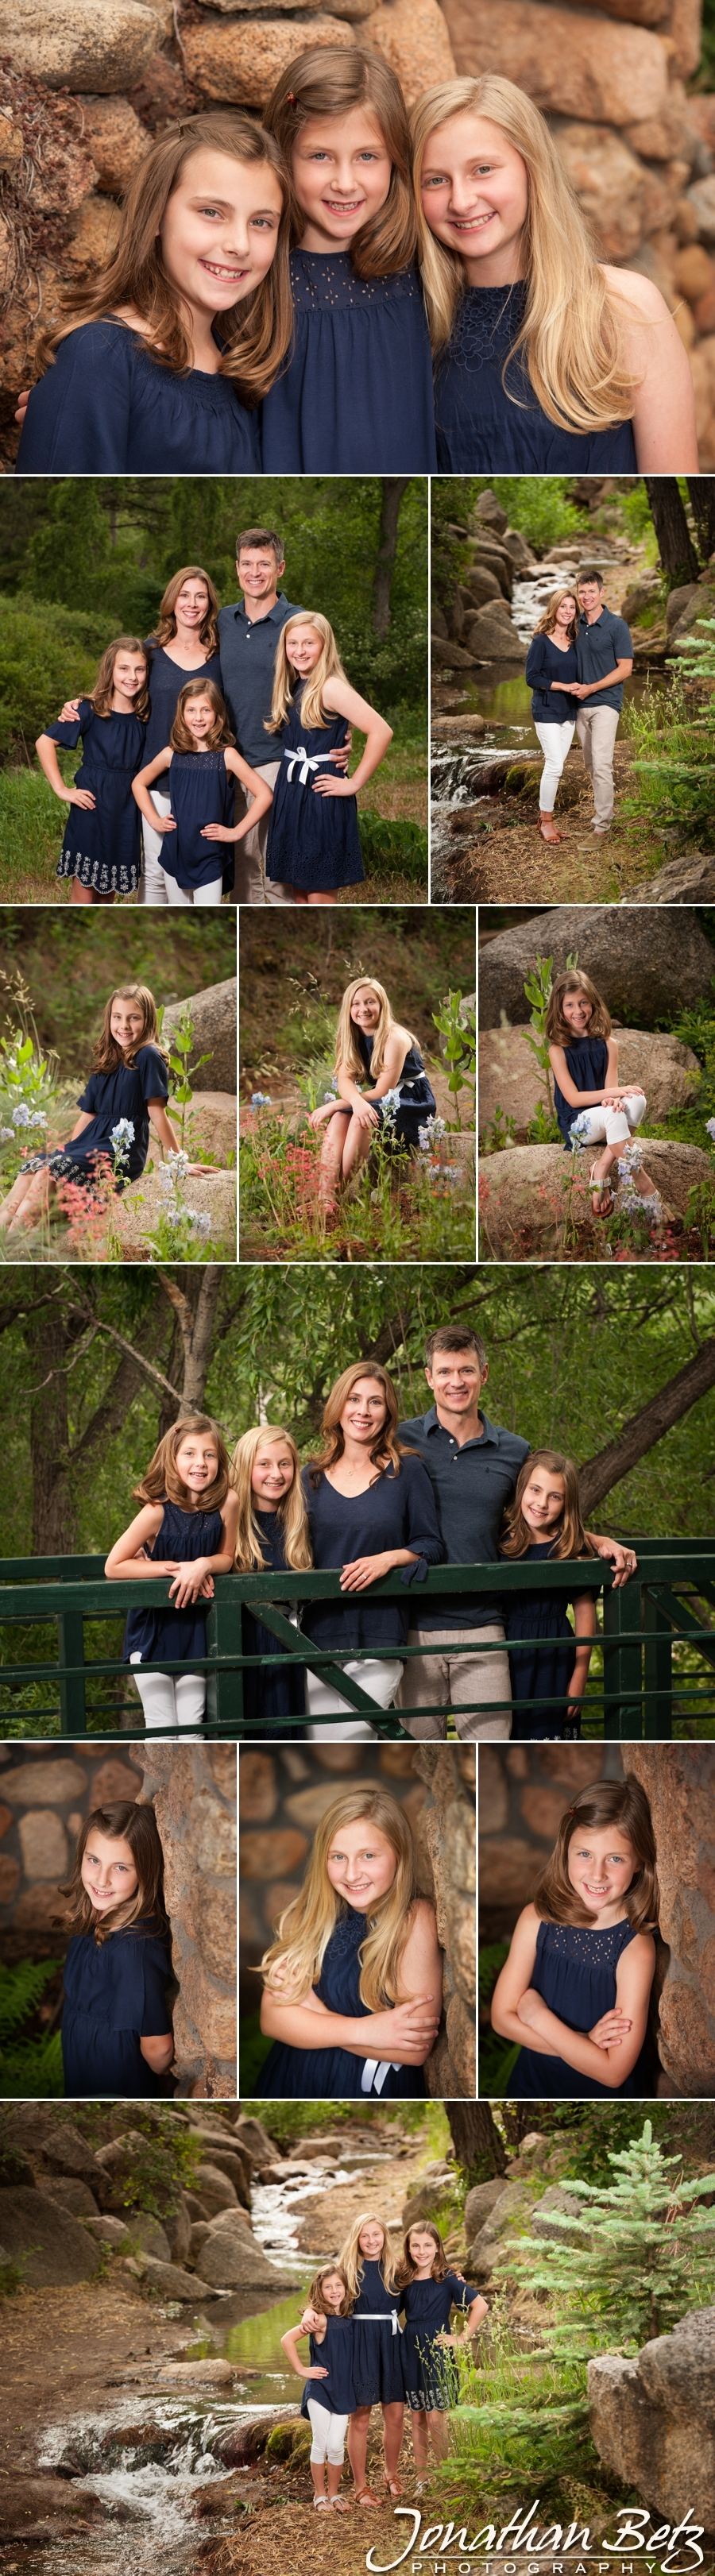 Family Pictures Cheyenne Canon Colorado Springs Jonathan Betz Photography Professional 1